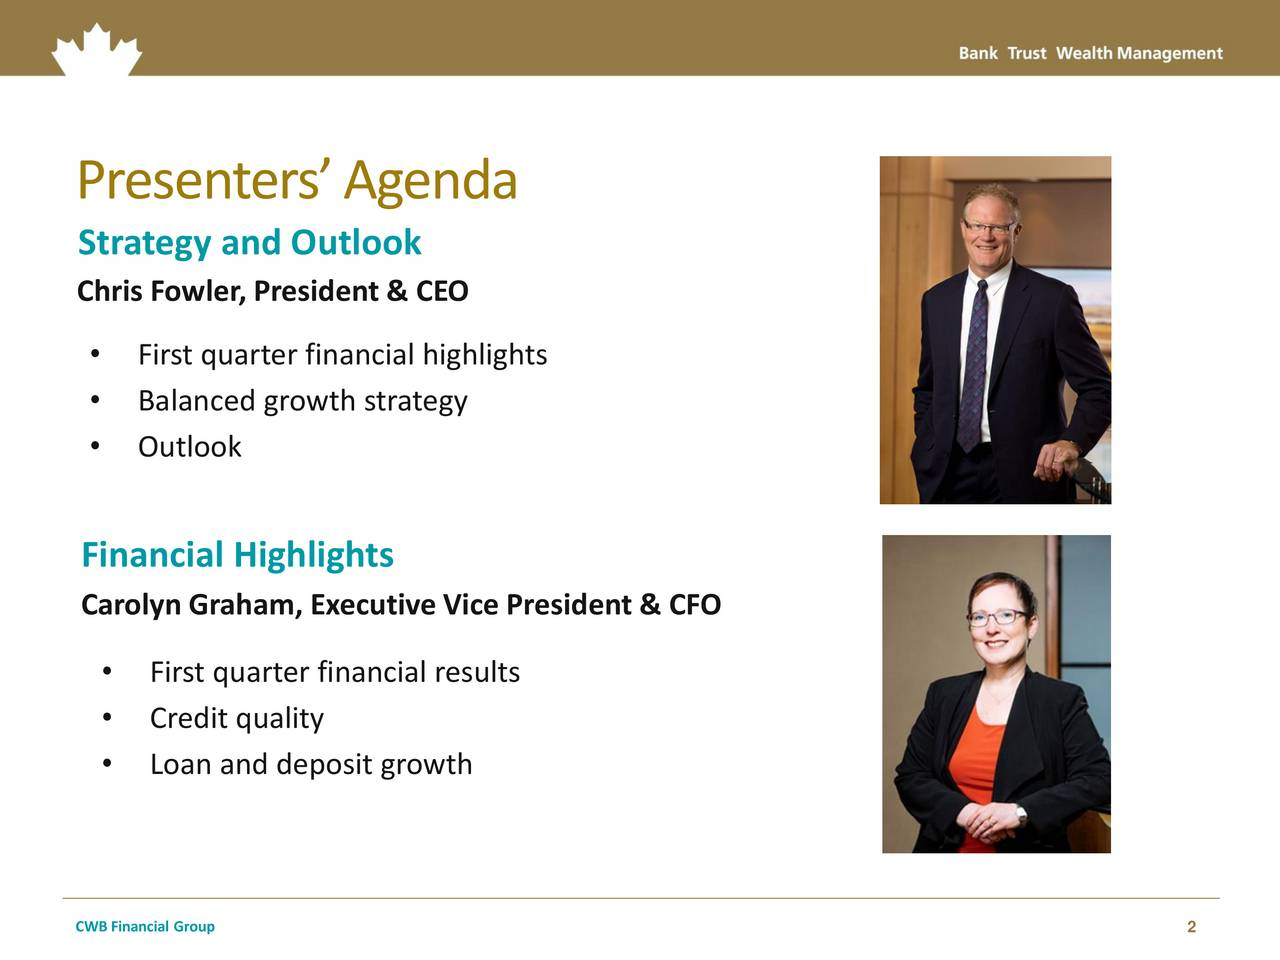 Strategy and Outlook Chris Fowler, President & CEO First quarter financial highlights Balanced growth strategy Outlook Financial Highlights Carolyn Graham, Executive Vice President & CFO First quarter financial results Credit quality Loan and deposit growth CWB Financial Group 2